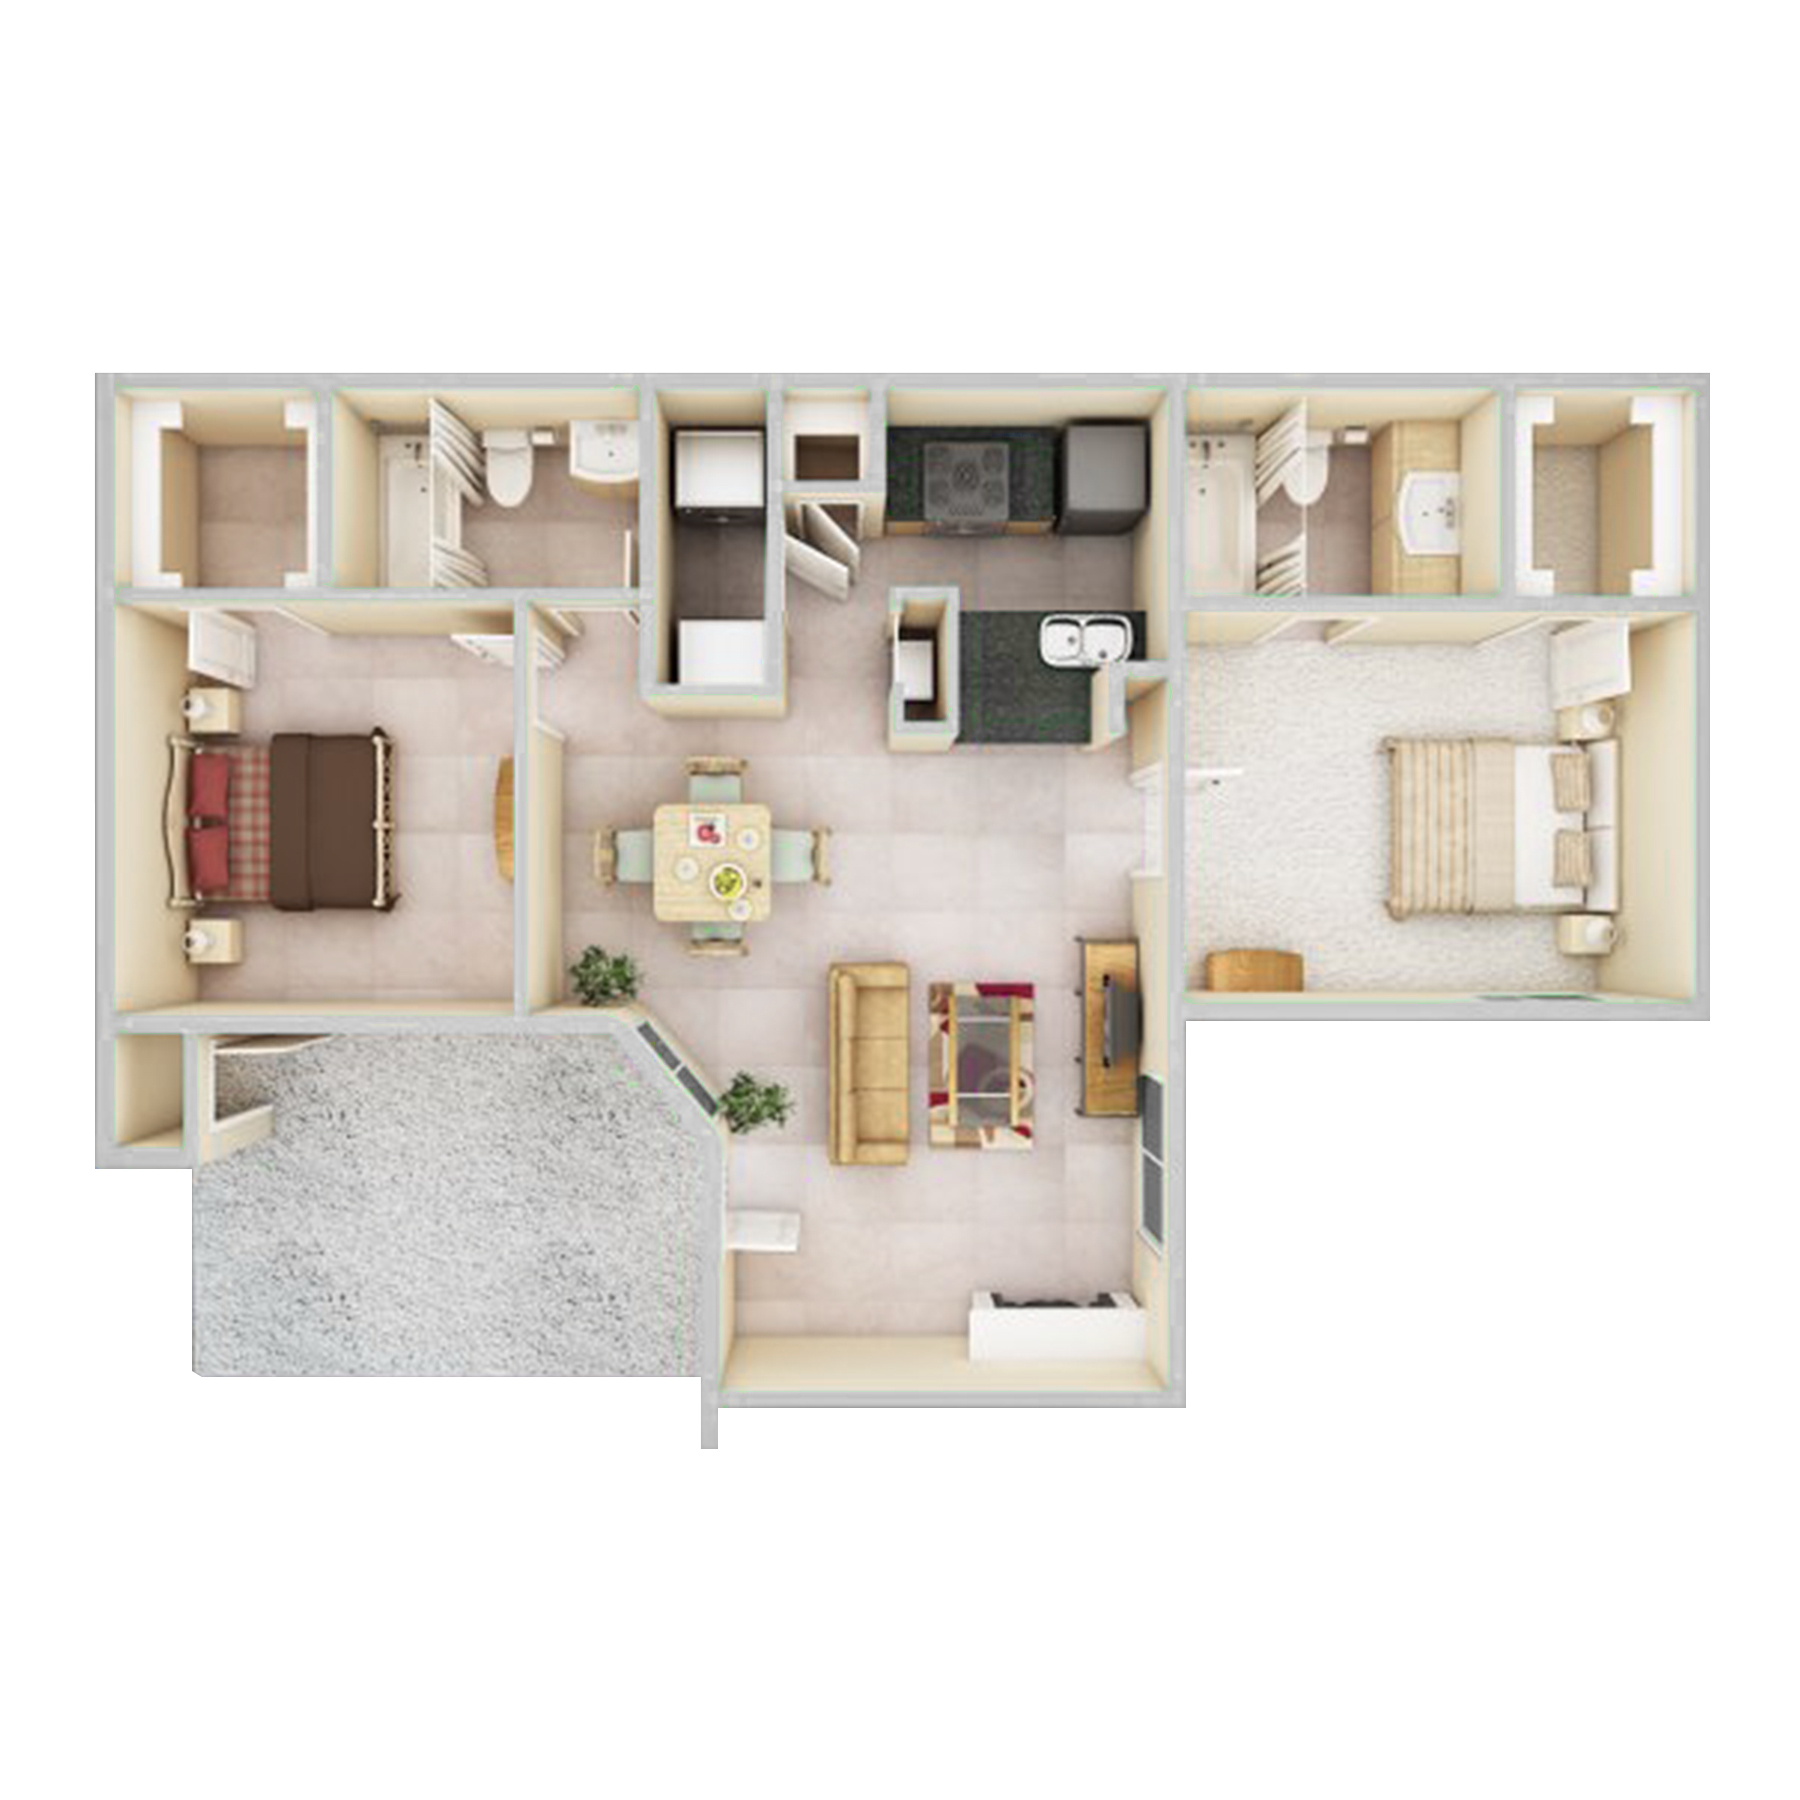 Senior living floor plan rendering Peaceful Pines Senior Living Rapid City, Sd